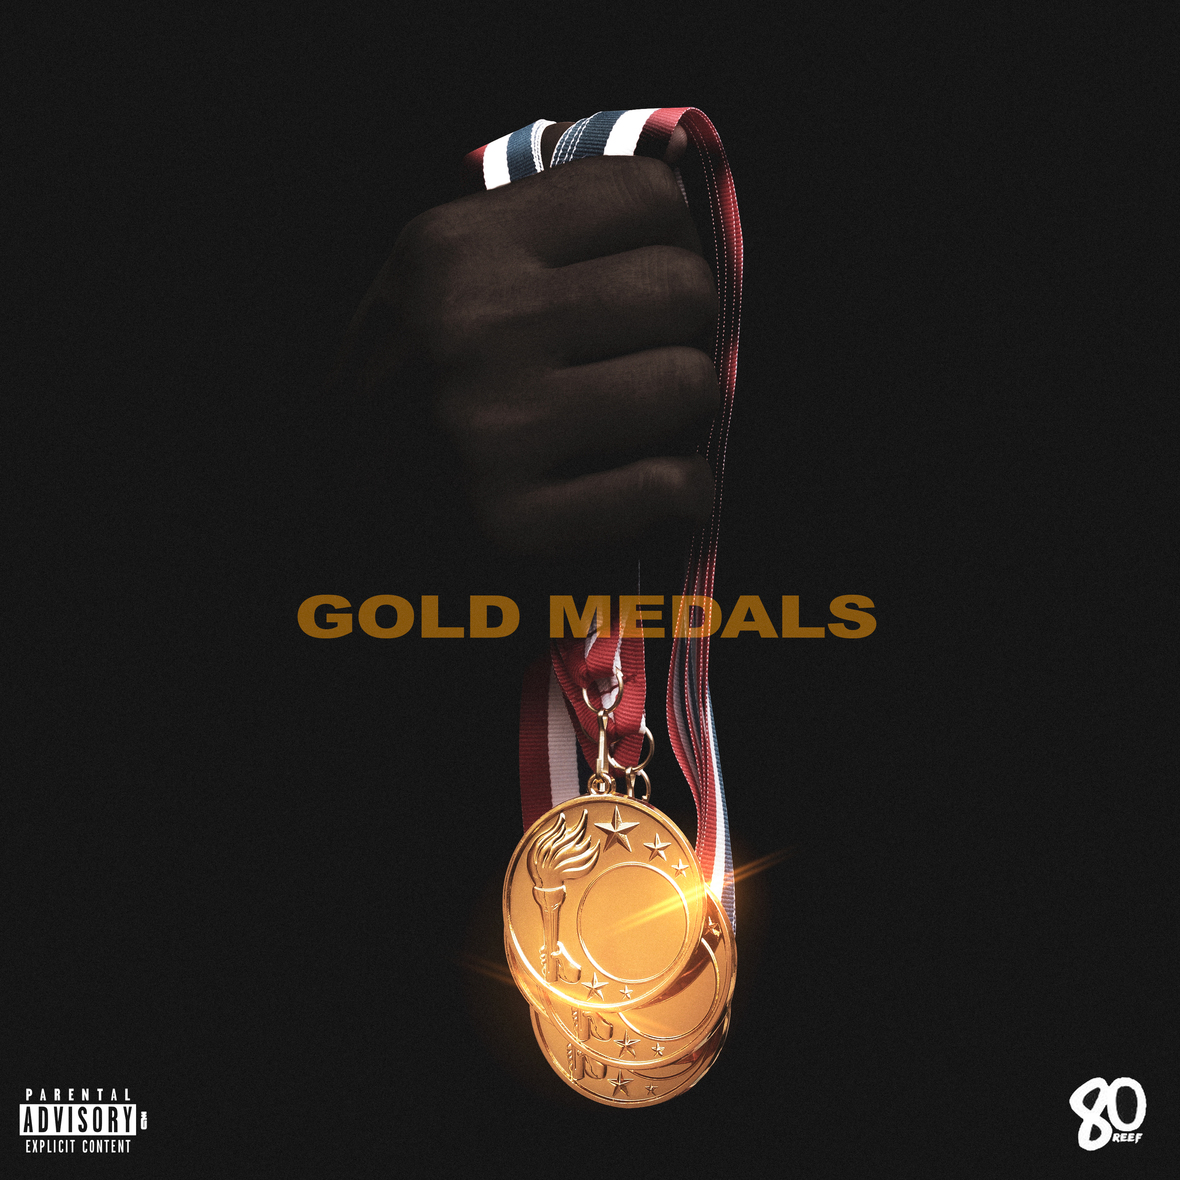 80 reef gold medals cover 3k